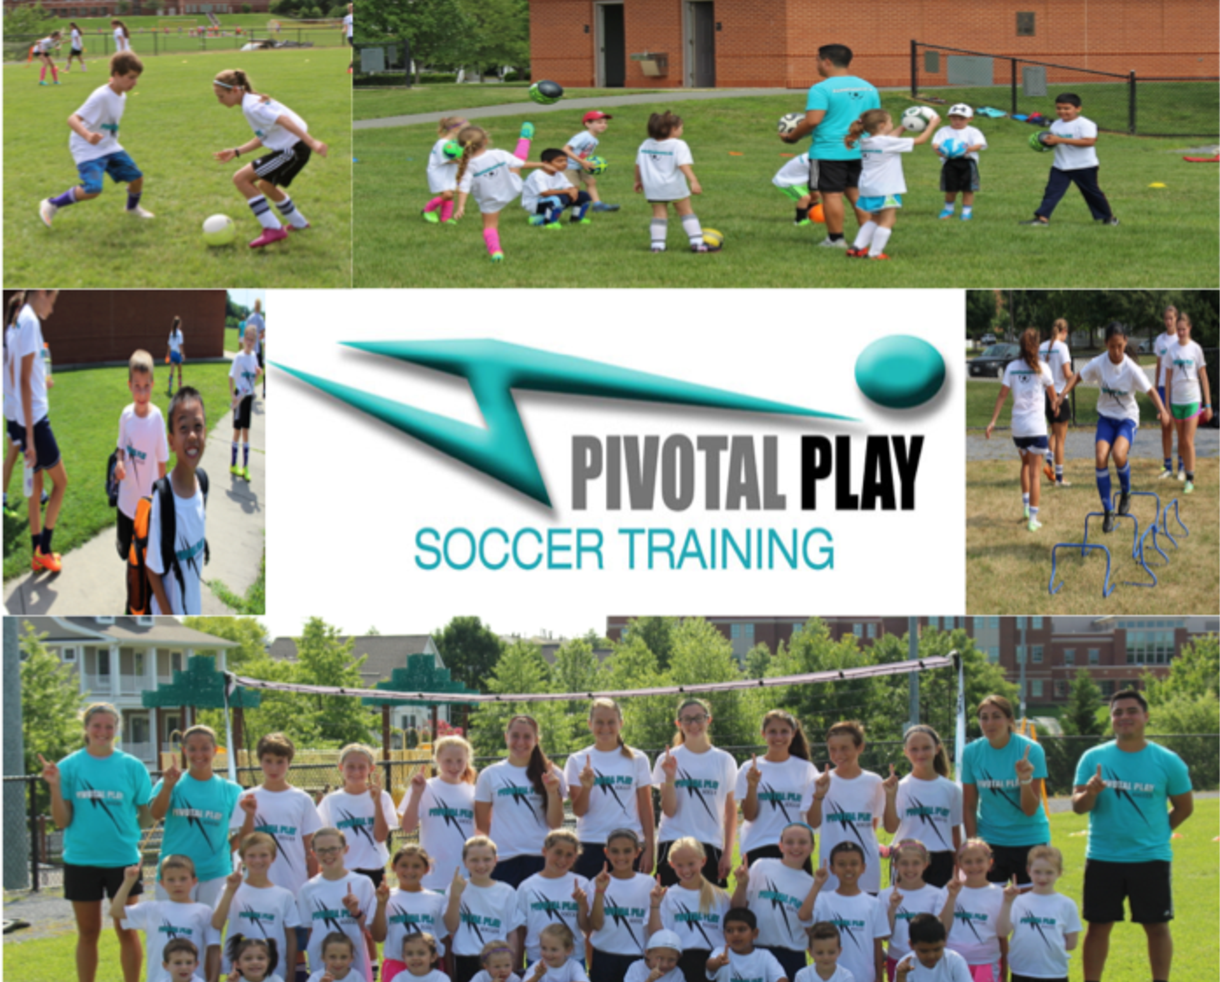 $98+ for Pivotal Play Soccer Training Winter Indoor Soccer Clinic for Grades 4-12 Bethesda, Potomac or Rockville (35% Off)